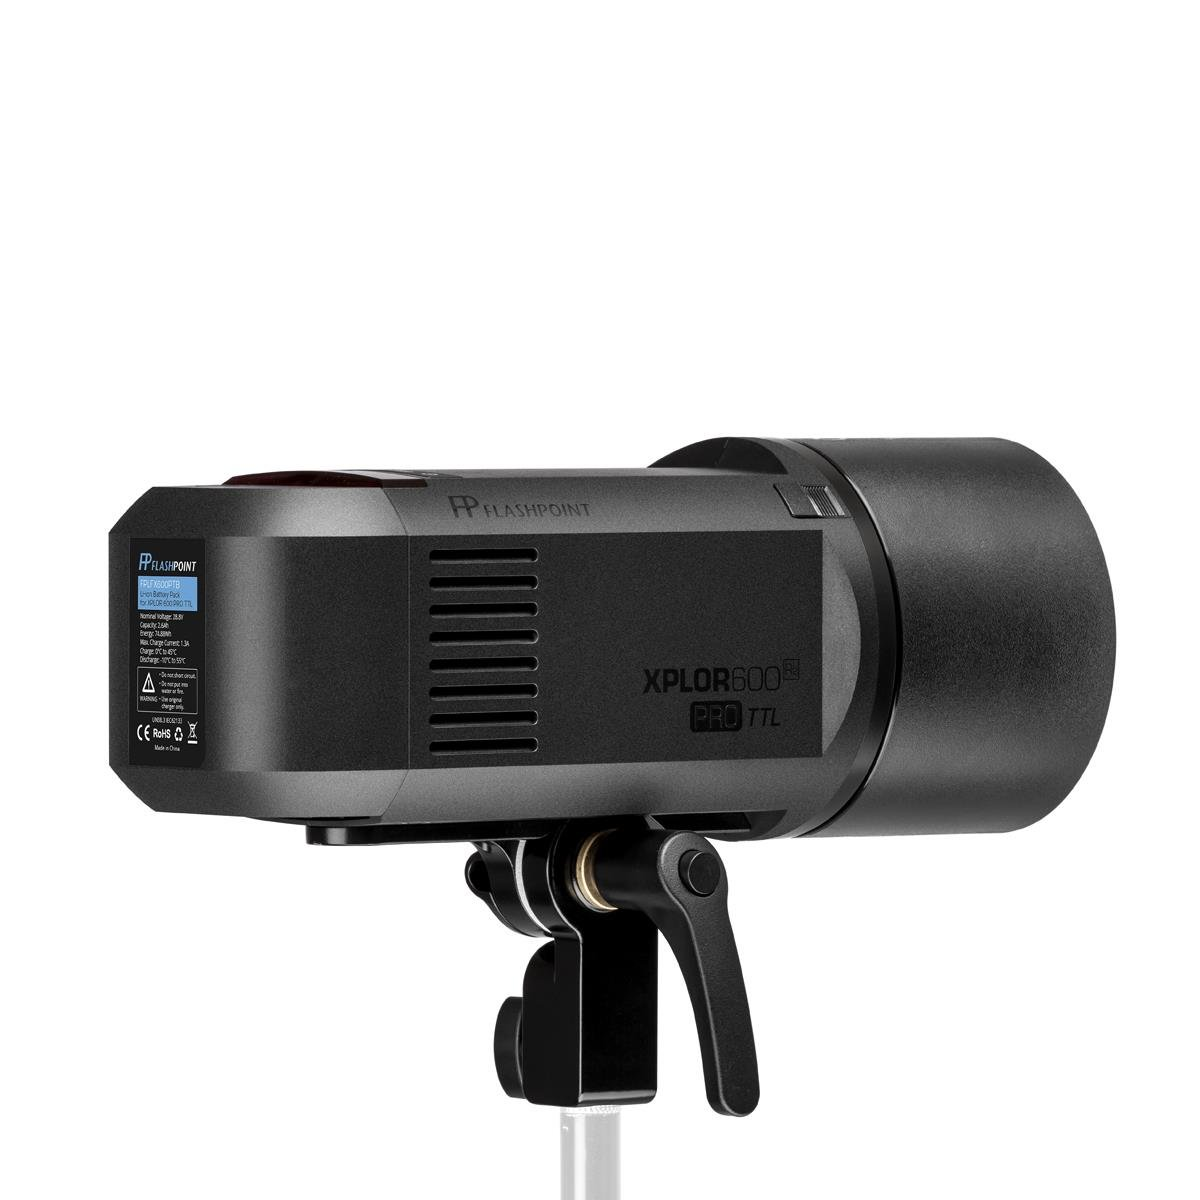 Flashpoint XPLOR 600PRO TTL Battery-Powered Monolight with Built-in R2 2.4GHz Radio Remote System R2 Pro Transmitter for Nikon (Bowens Mount) - Godox AD600 Pro by Flashpoint (Image #4)